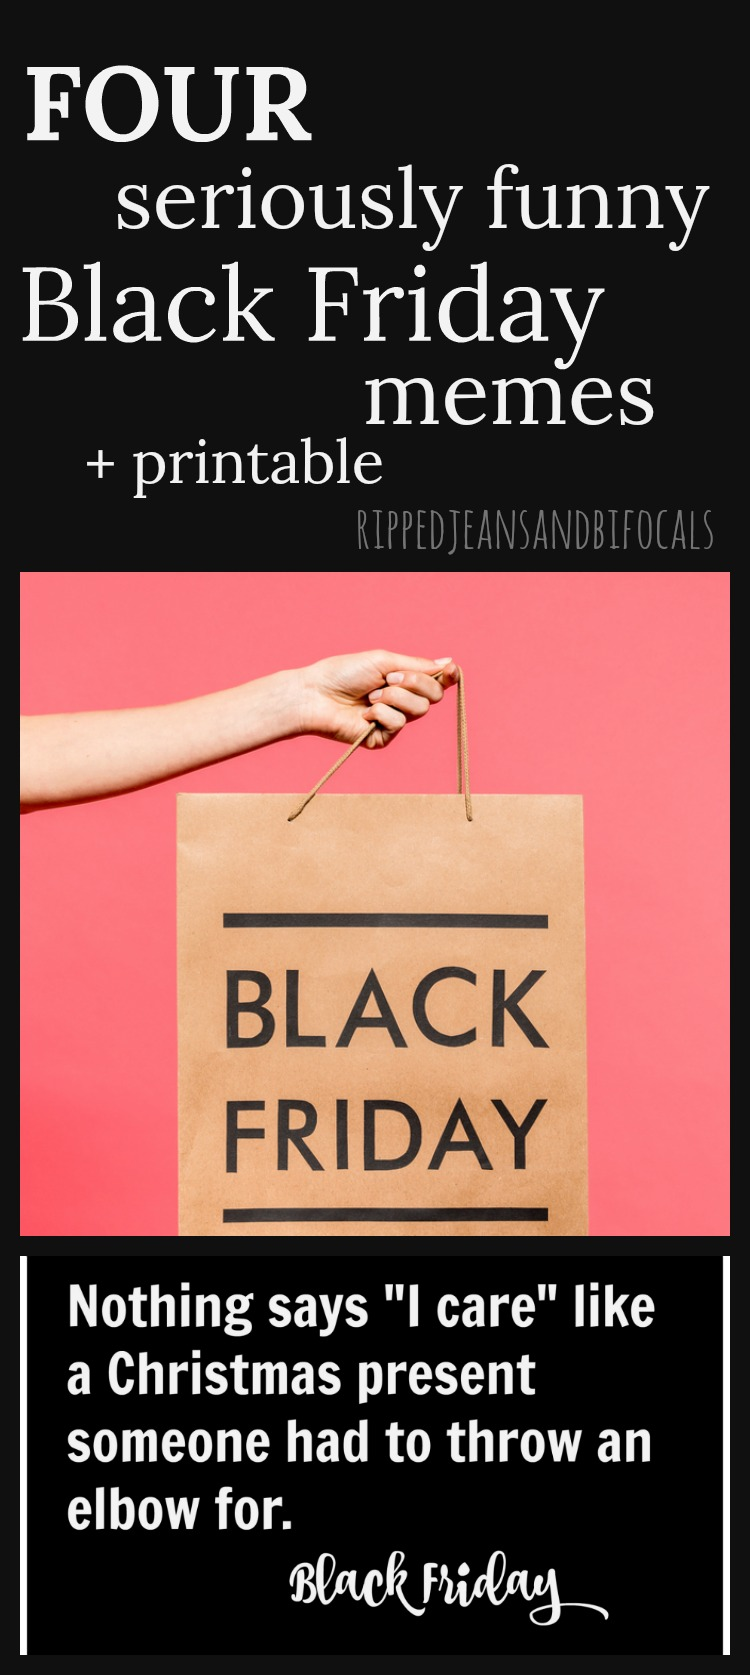 funny black friday memes plus free printable ripped jeans bifocals. Black Bedroom Furniture Sets. Home Design Ideas